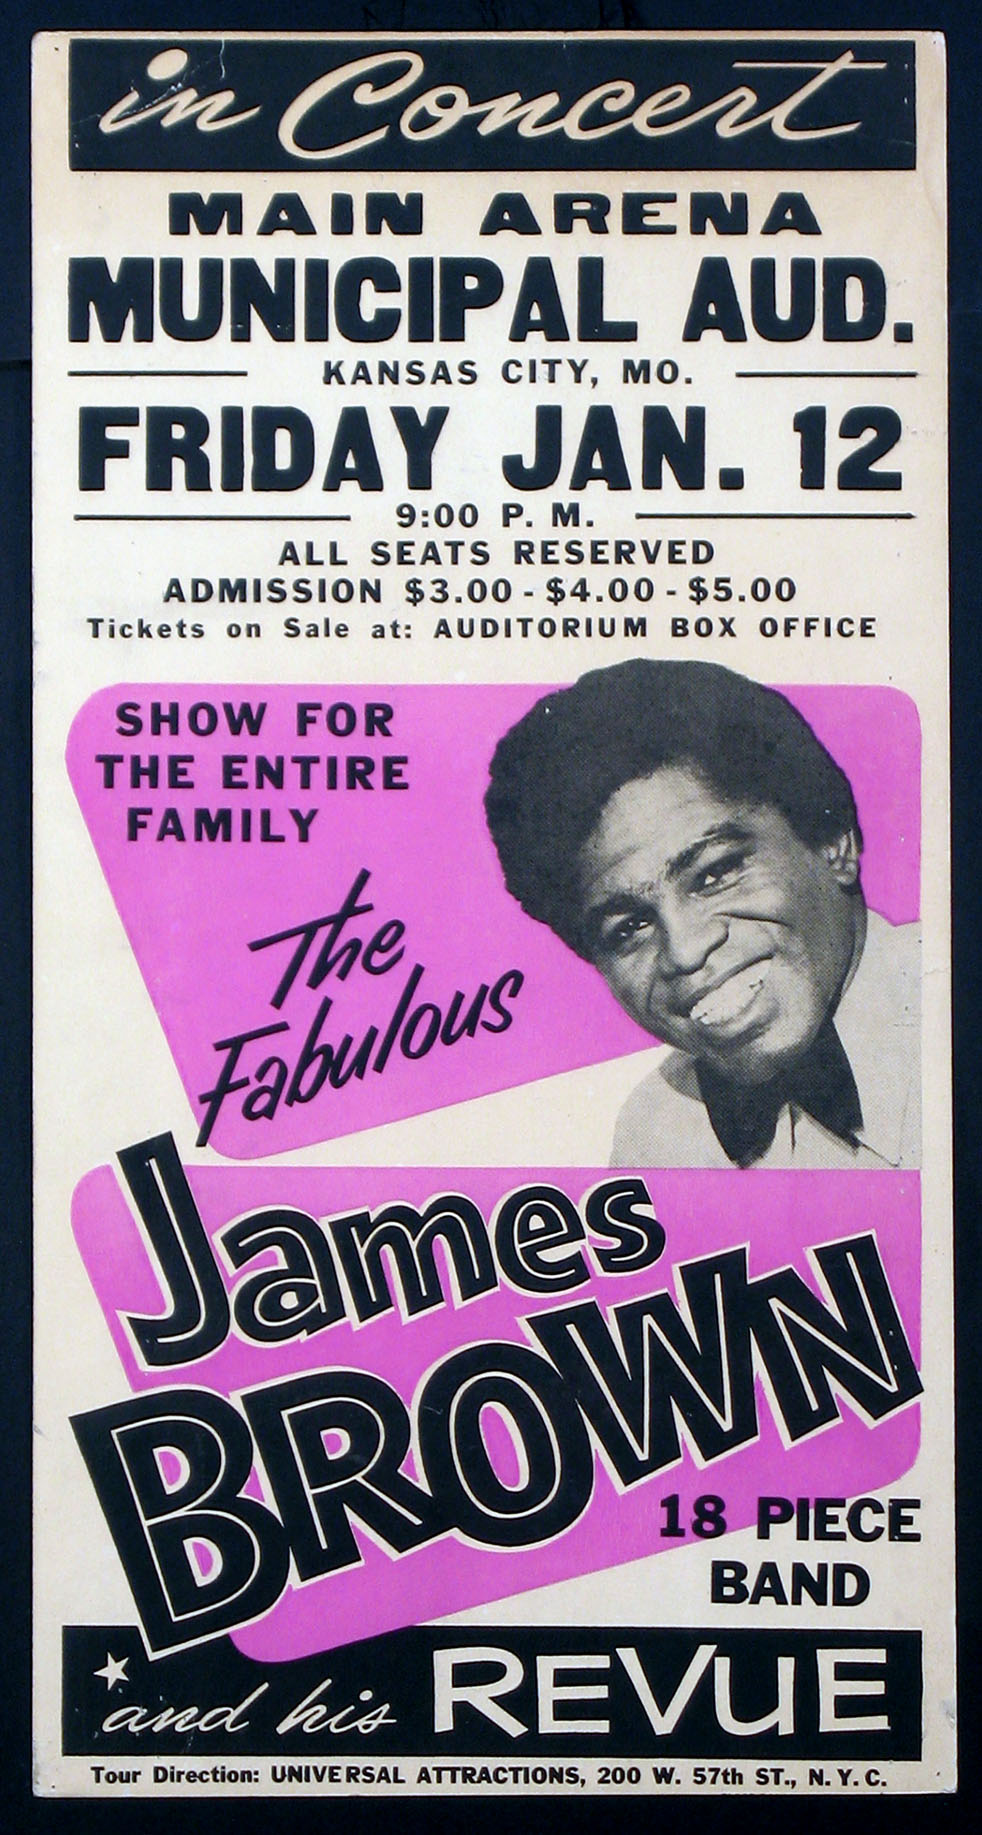 FABULOUS JAMES BROWN AND HIS REVUE CONCERT POSTER @ FilmPosters.com